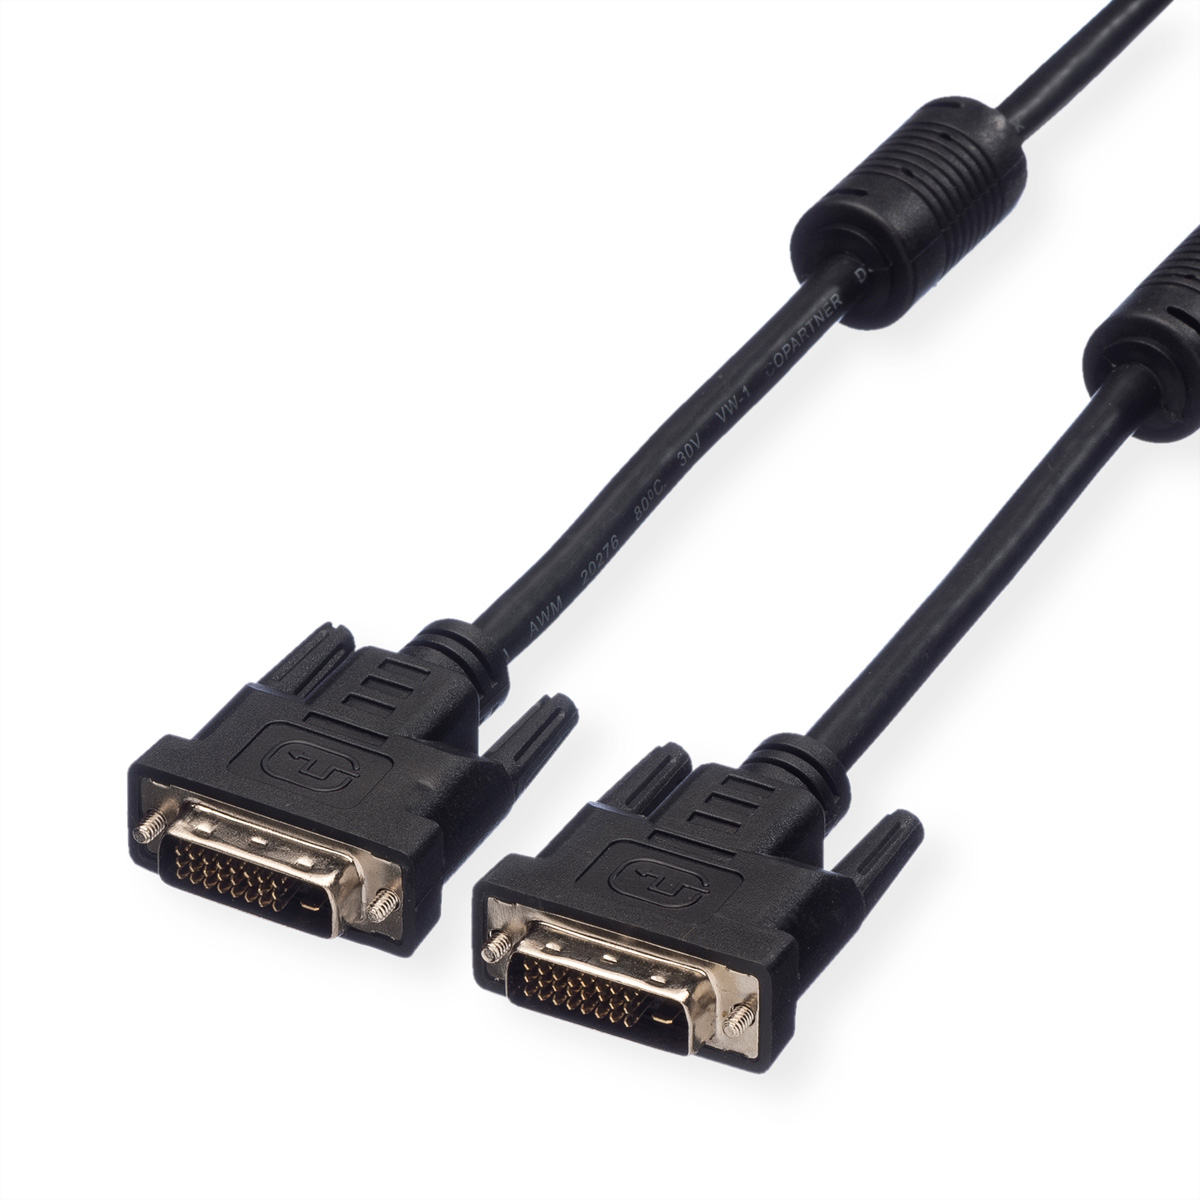 VALUE Monitorkabel DVI, DVI ST-ST, (24+1) dual link, 3 m